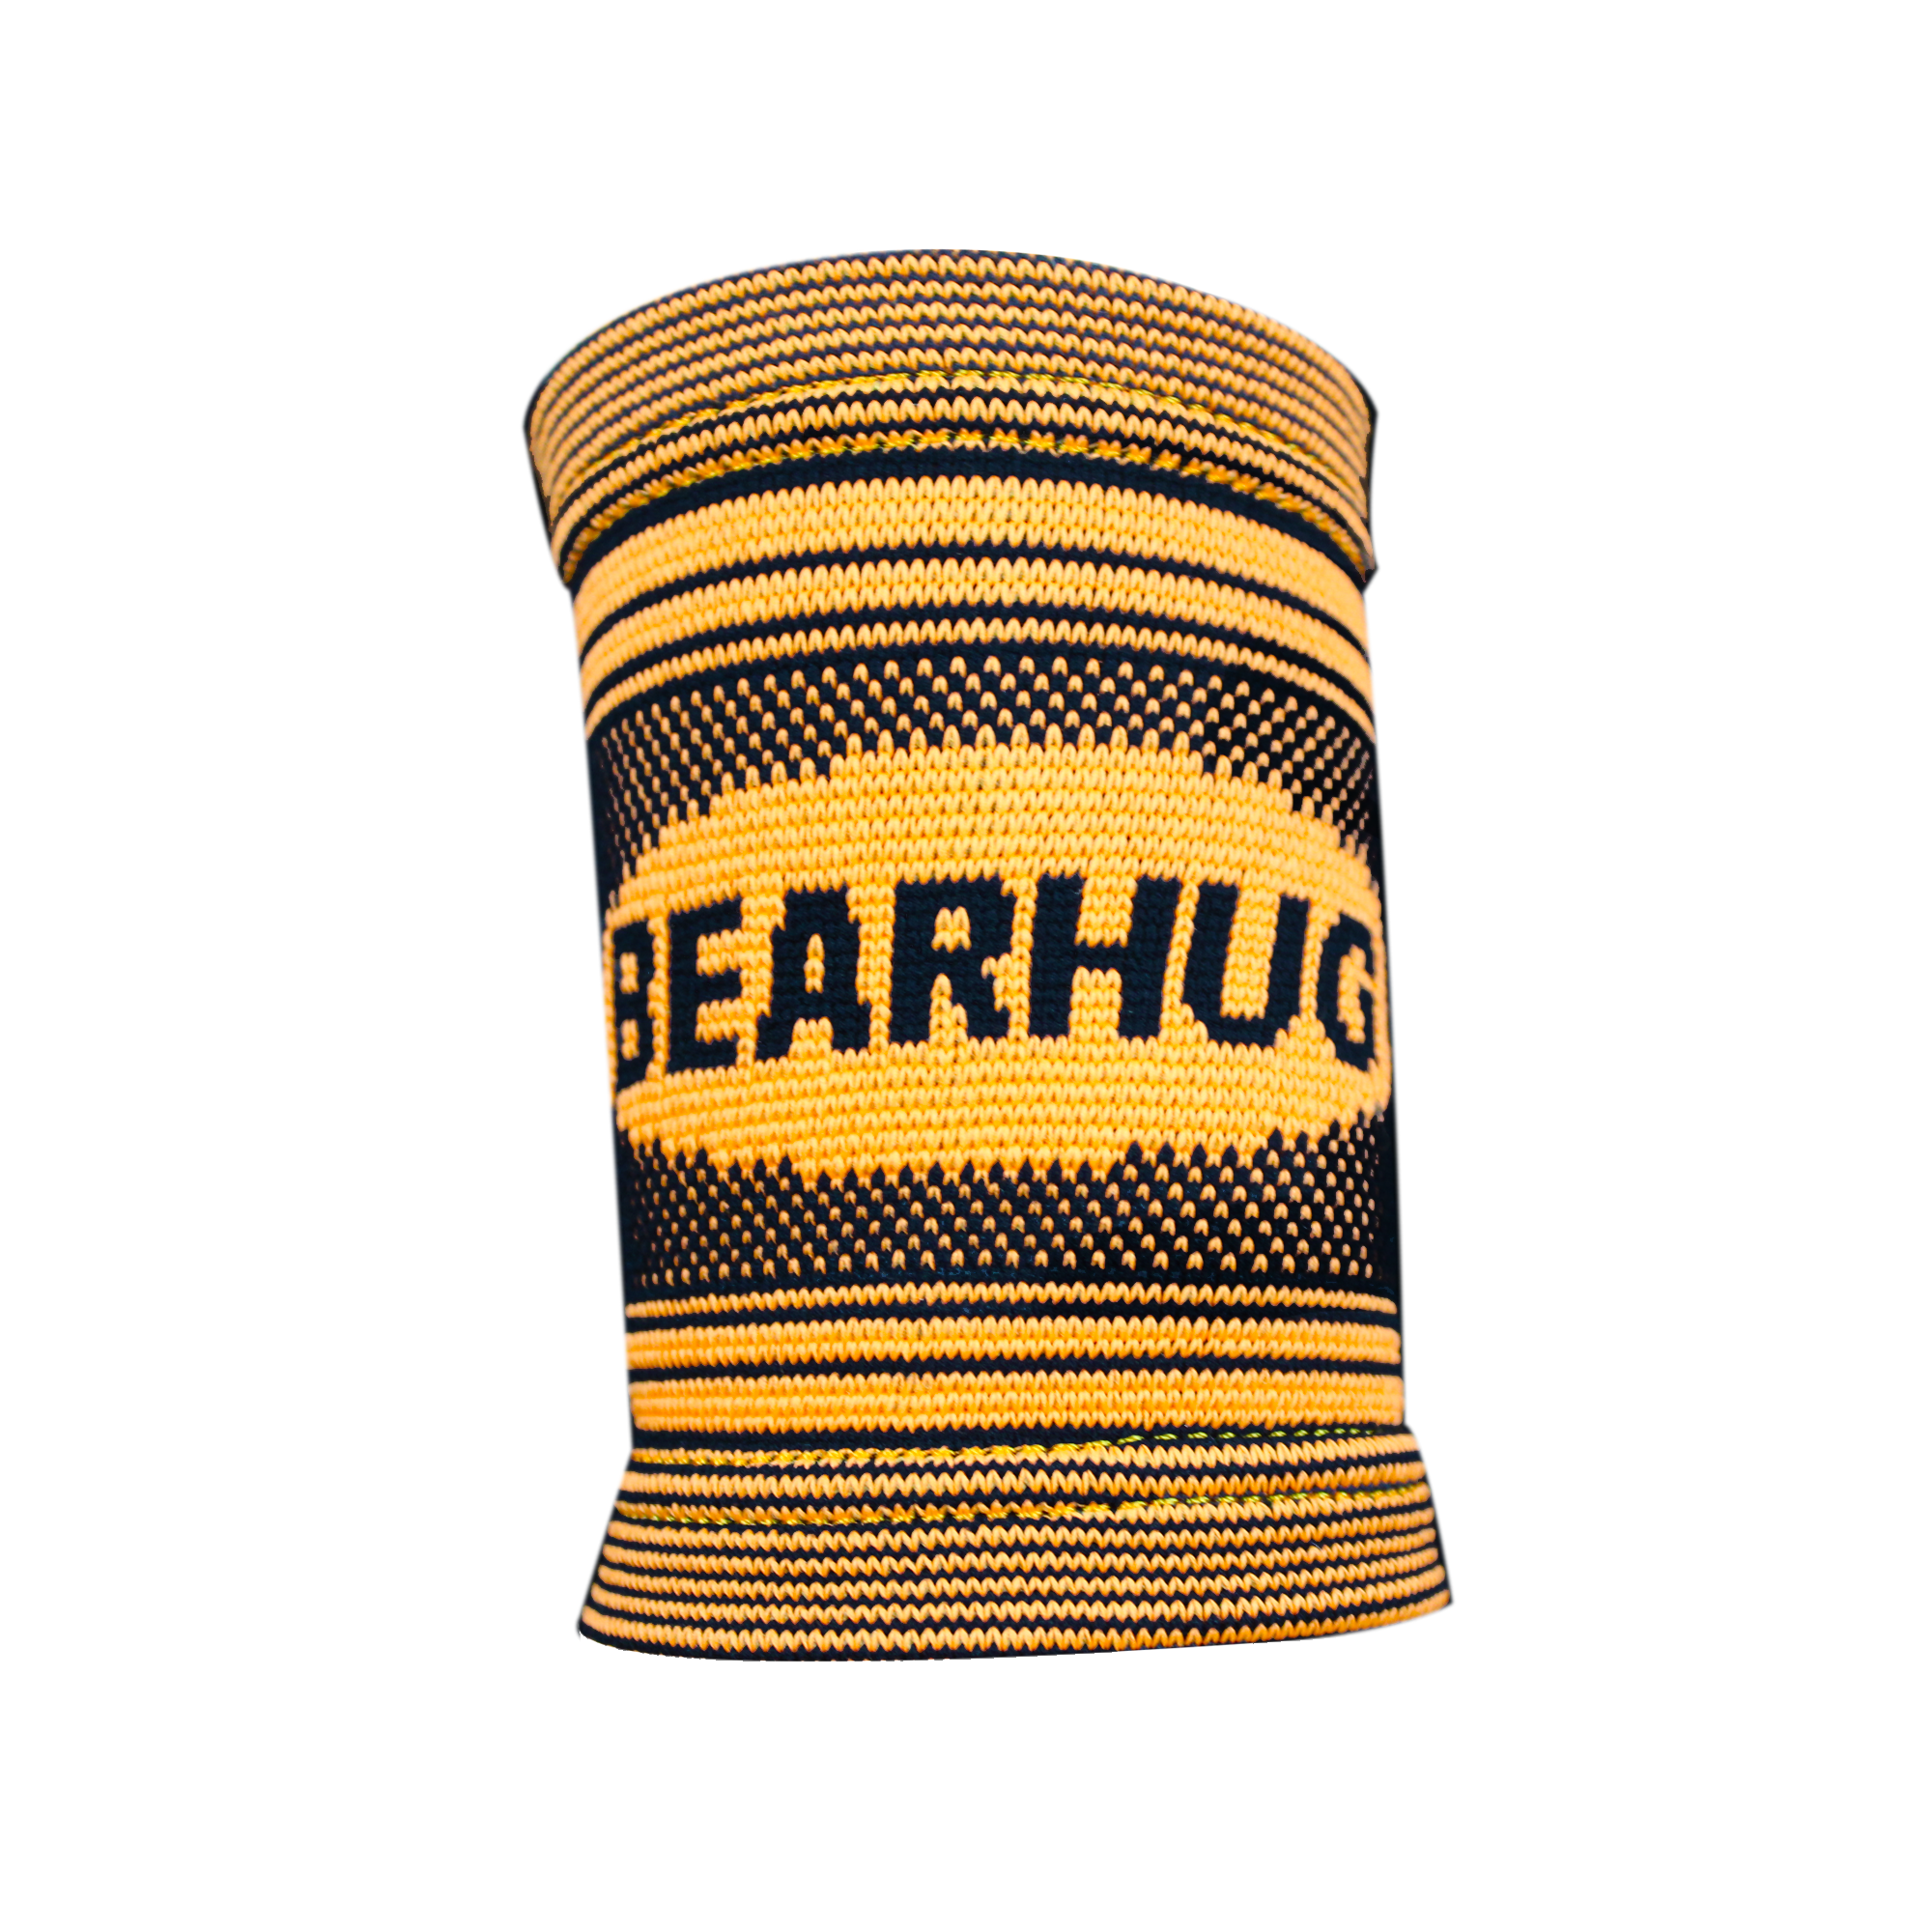 Wrist Compression Support Sleeve-Support-Bearhug